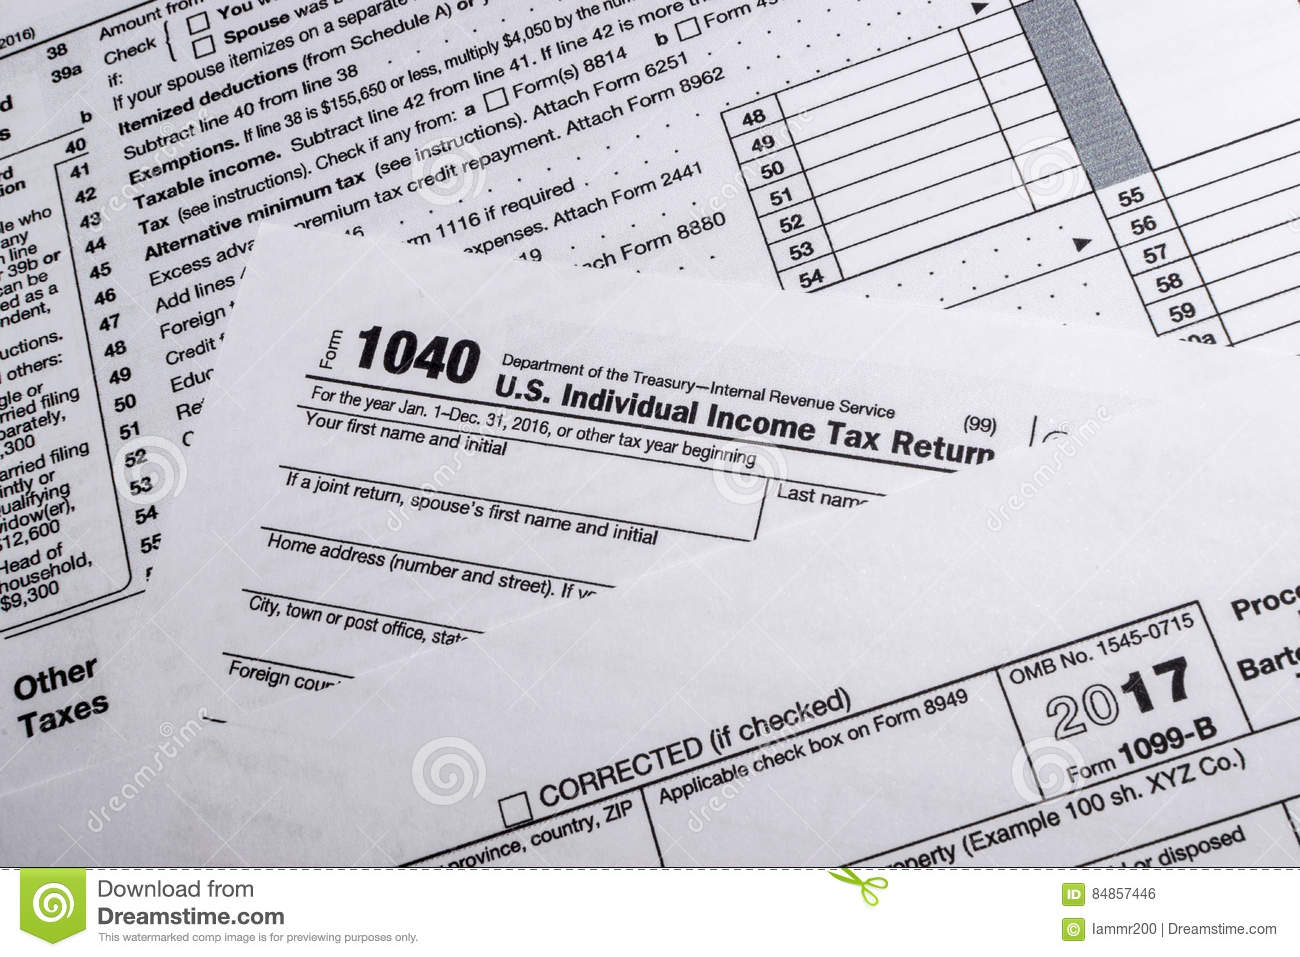 Irs Form 1099 B Proceeds Frim Broker And Barter Exchange Transa